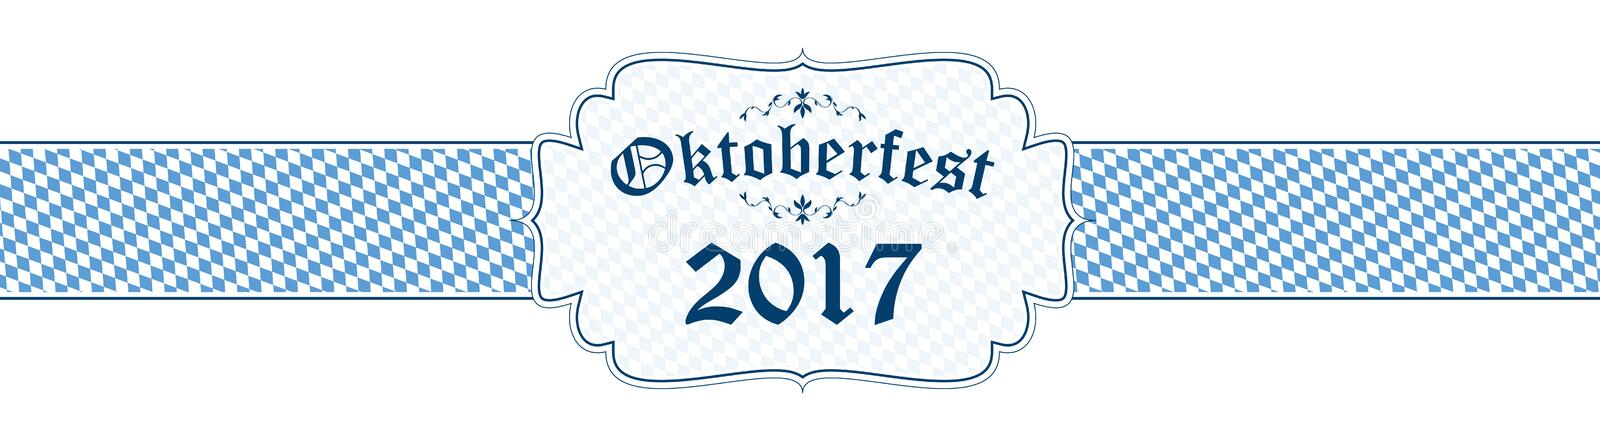 Oktoberfest banner with text Oktoberfest 2017 royalty free illustration